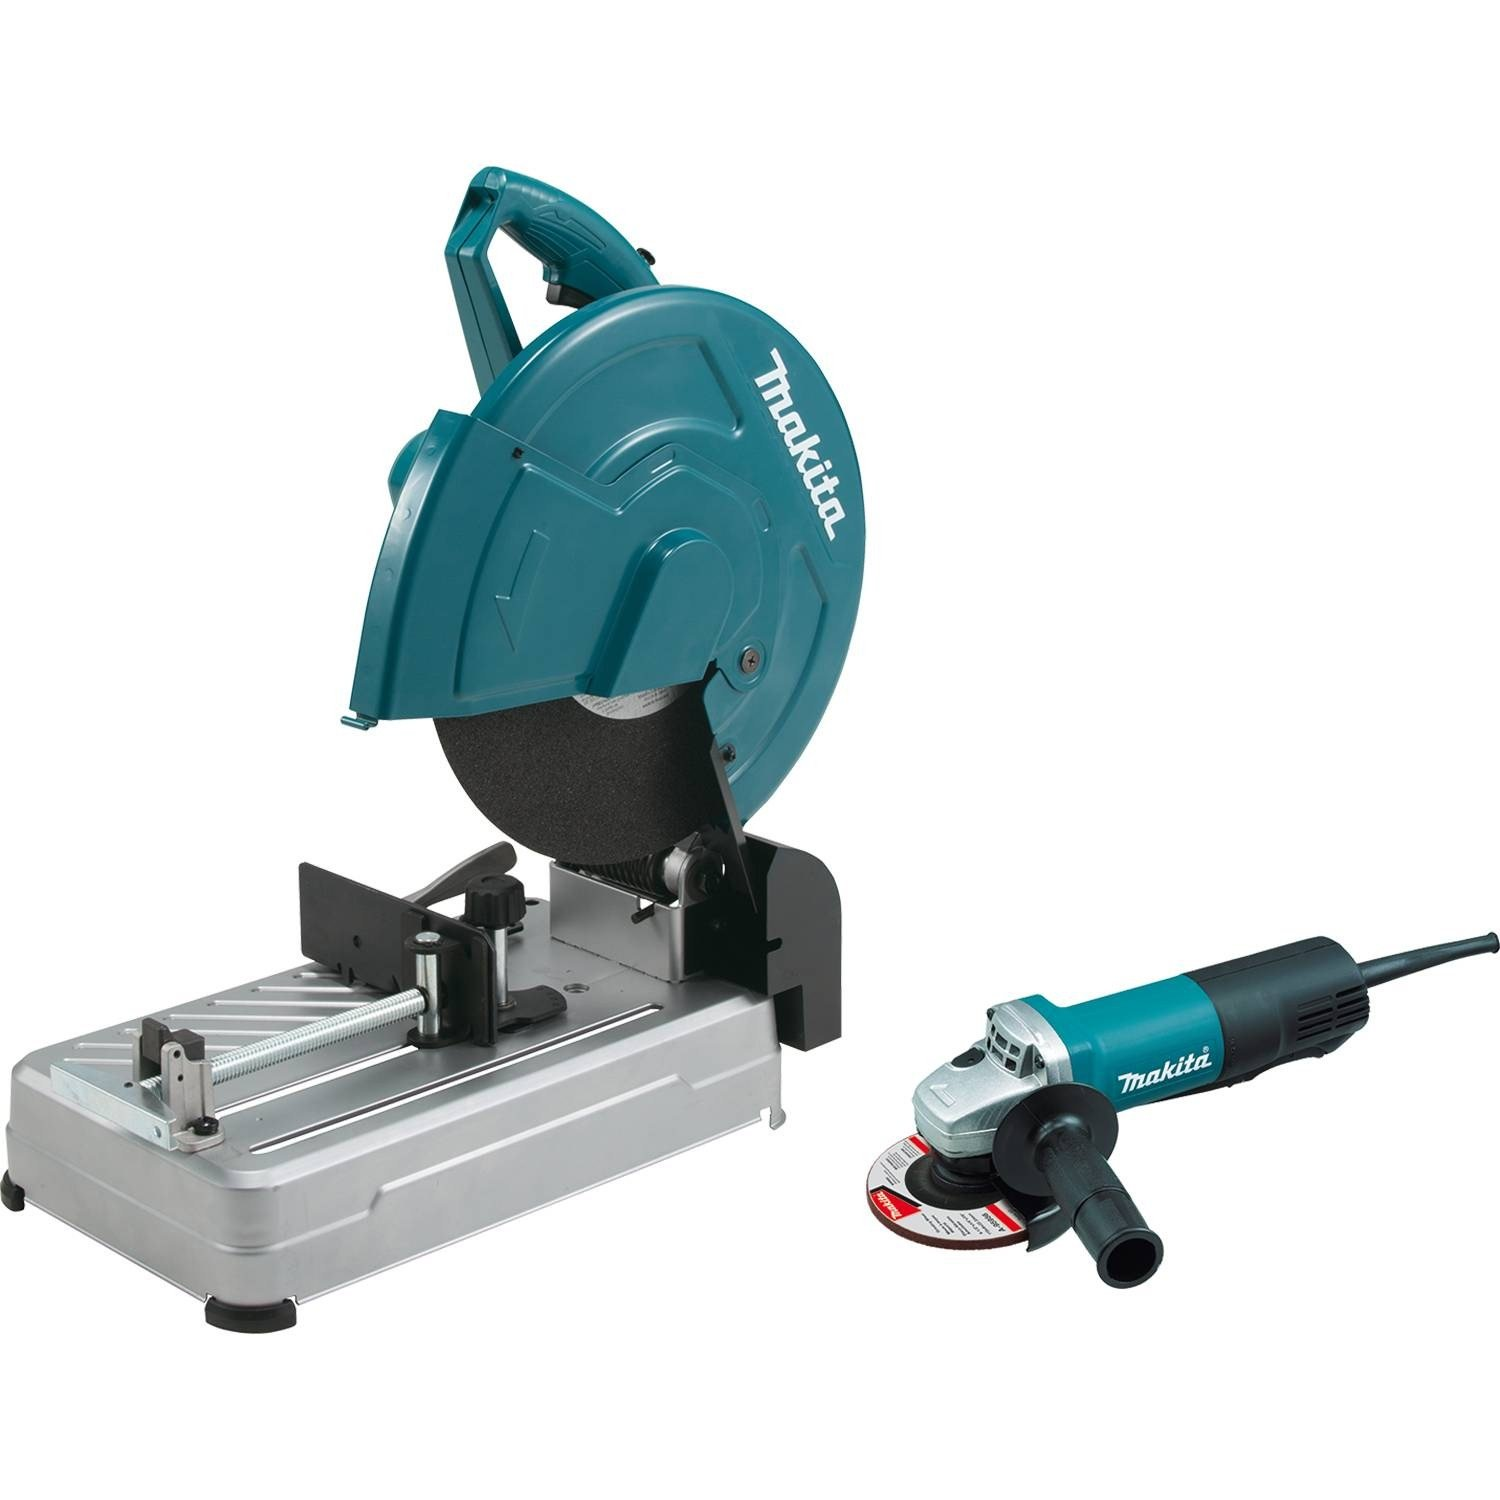 """Makita LW1400X2 Cut-Off Saw with Tool-Less Wheel Change and 4-1/2"""" Paddle Switch Angle Grinder, 14"""" (Discontinued by Manufacturer)"""